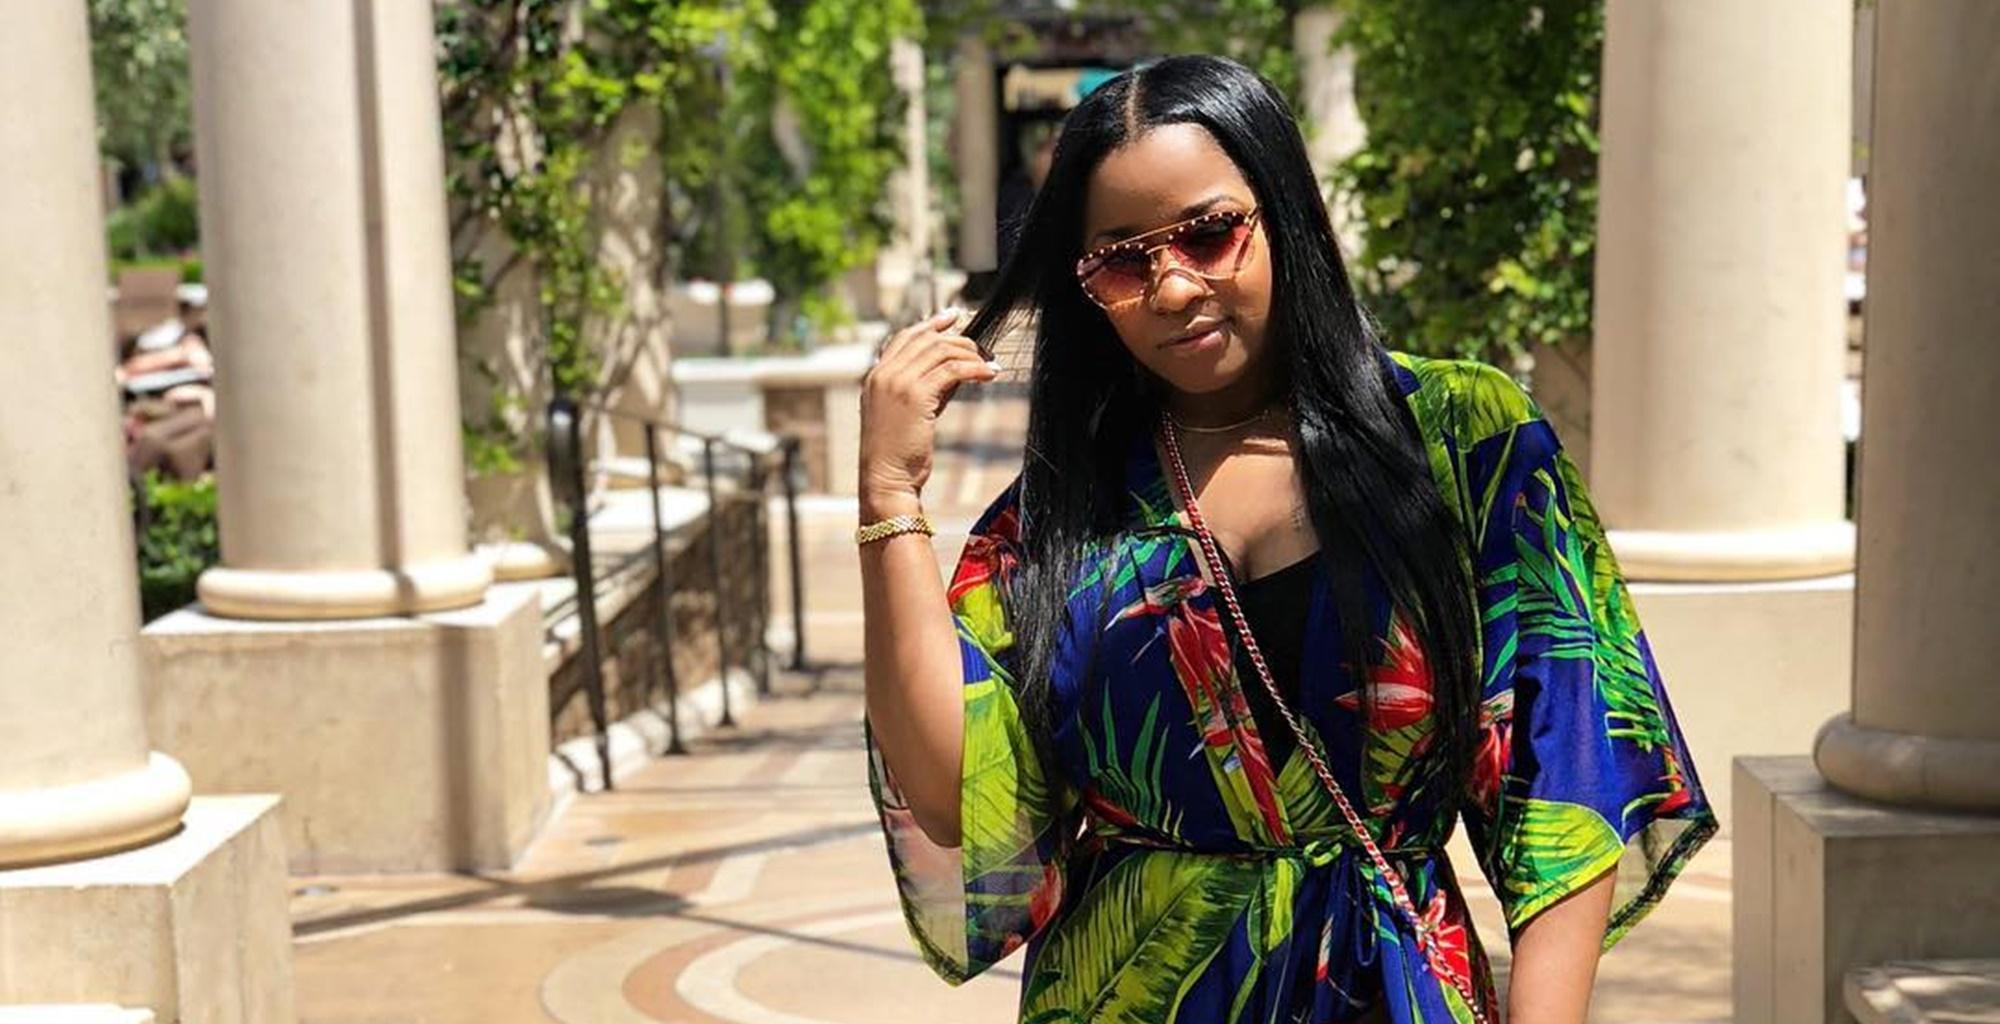 Toya Wright Impressed And Uplifted Fans At The Ultimate Women's Expo Where She Was A Speaker